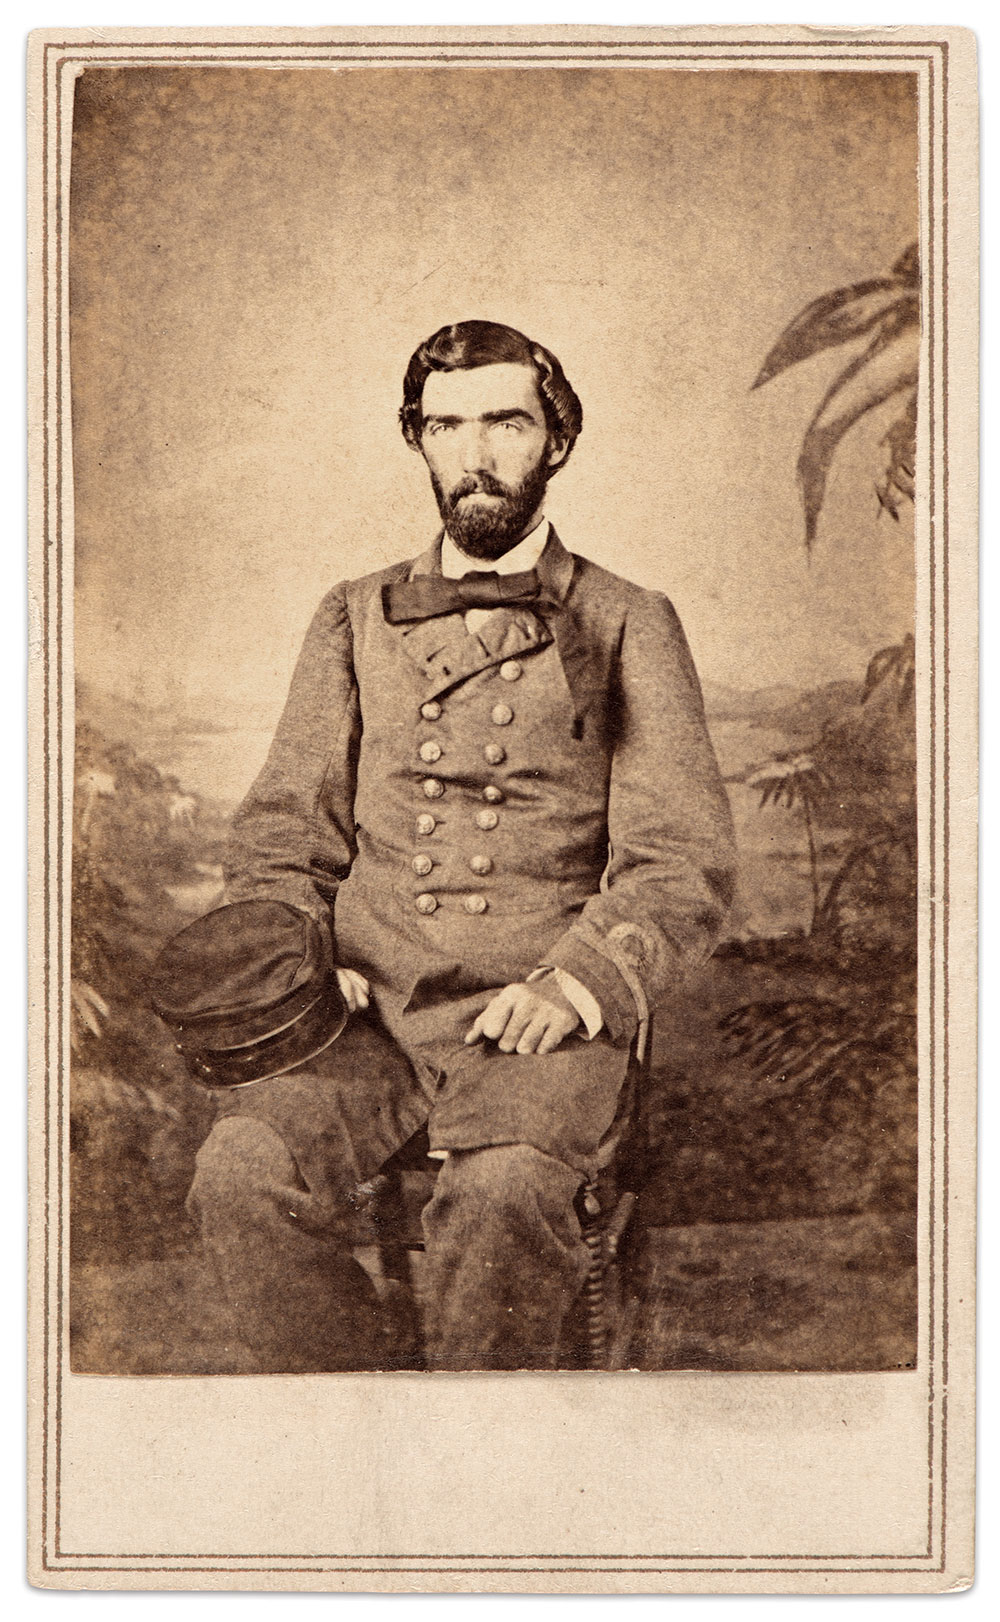 Lt. Samuel Wooten Averett pictured in Bermuda, March 1864. Averett graduated from the U.S. Naval Academy in 1859, and served as a midshipman on the Wyoming when he resigned his commission in June 1861. Appointed acting lieutenant in the Confederate navy in September 1861 at New Orleans, La., he served on the Atlanta before receiving orders to report to the Florida in October 1862. Averett served with distinction as lieutenant and executive officer on the Florida through 1864. Courtesy of the Confederate Memorial Literary Society (CMLS) Image Collection, Virginia Museum of History & Culture.